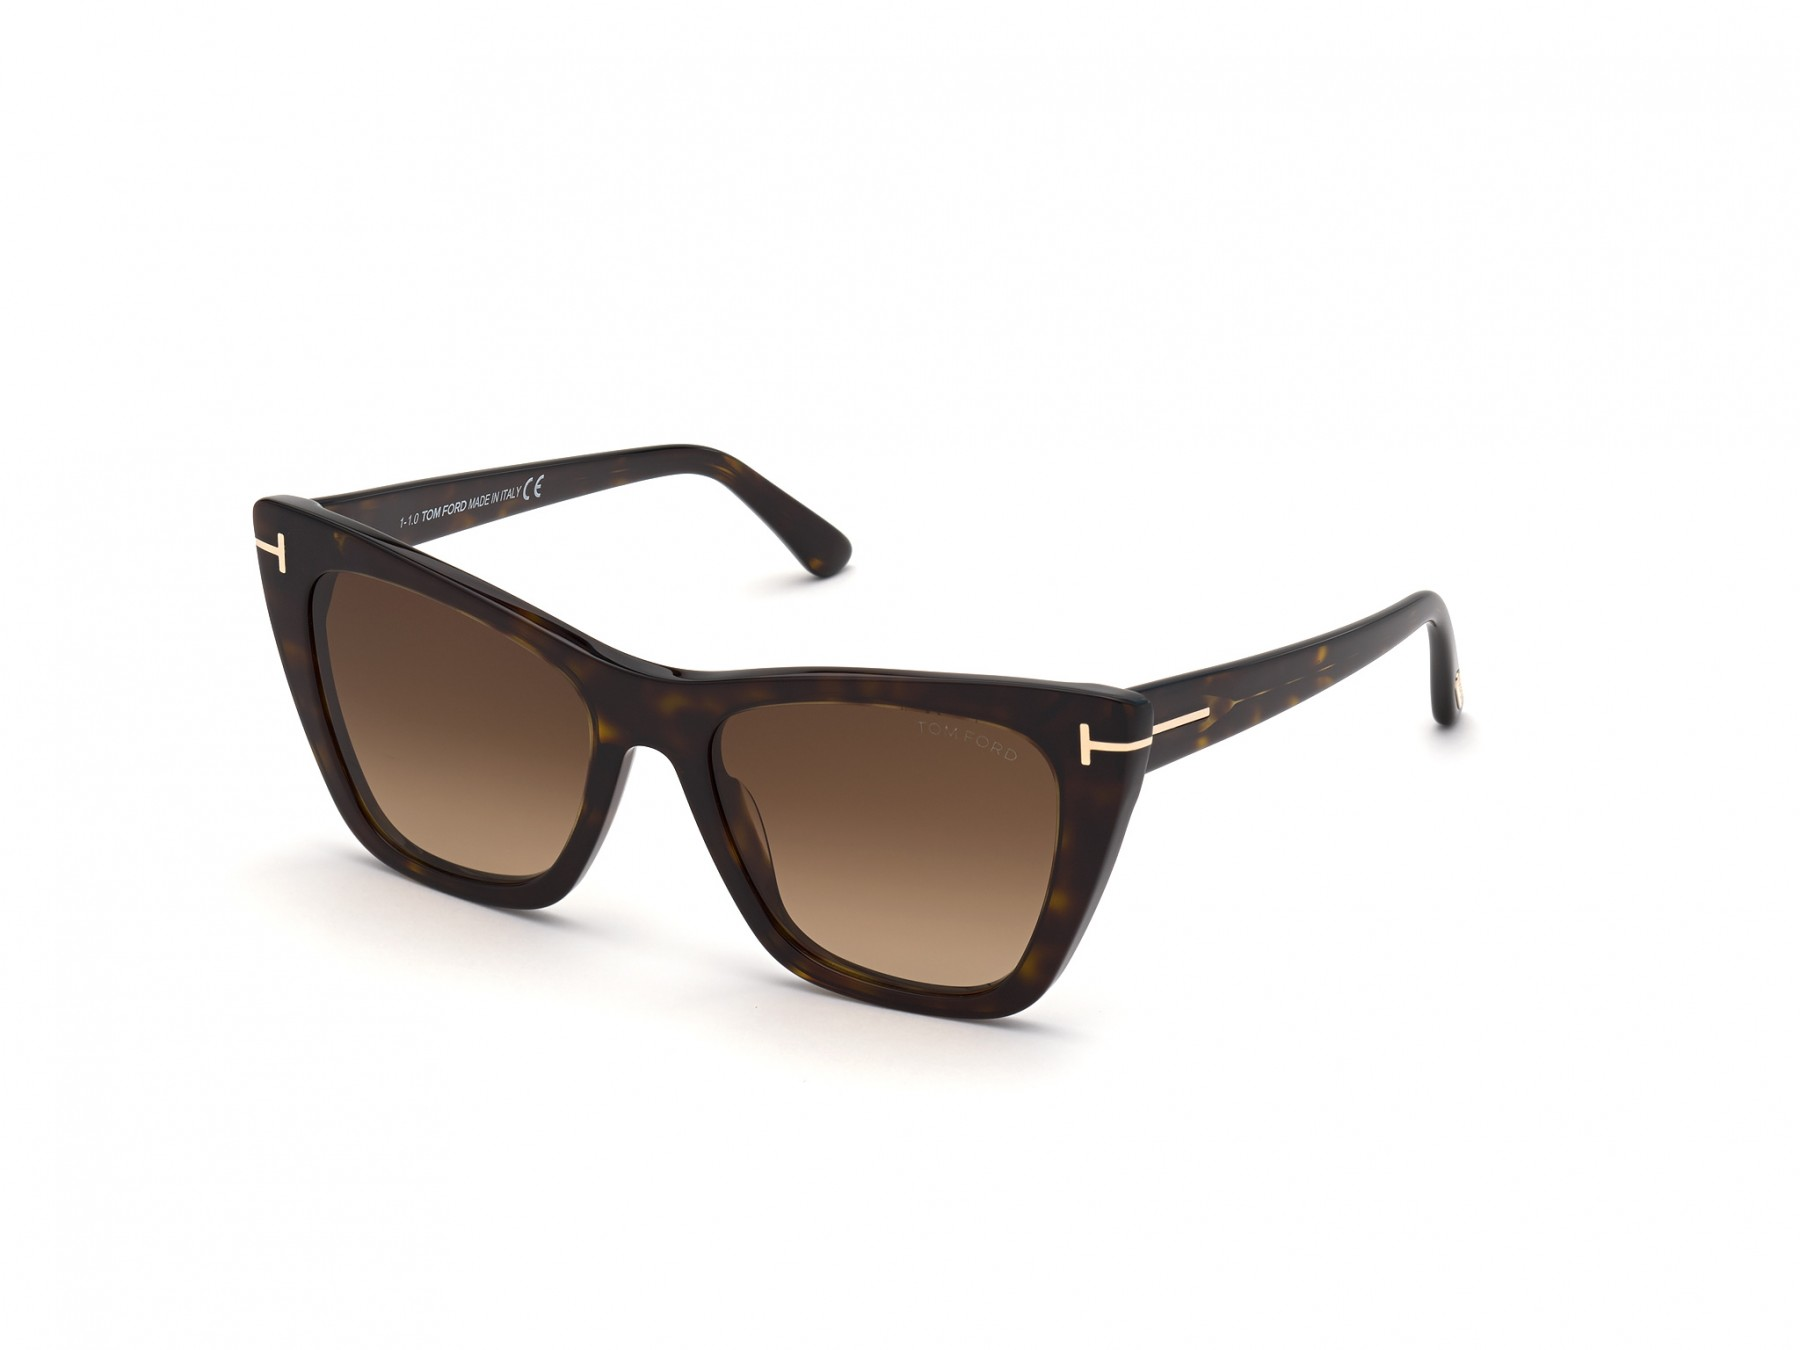 TOM FORD 0846 52F 53 SIZE